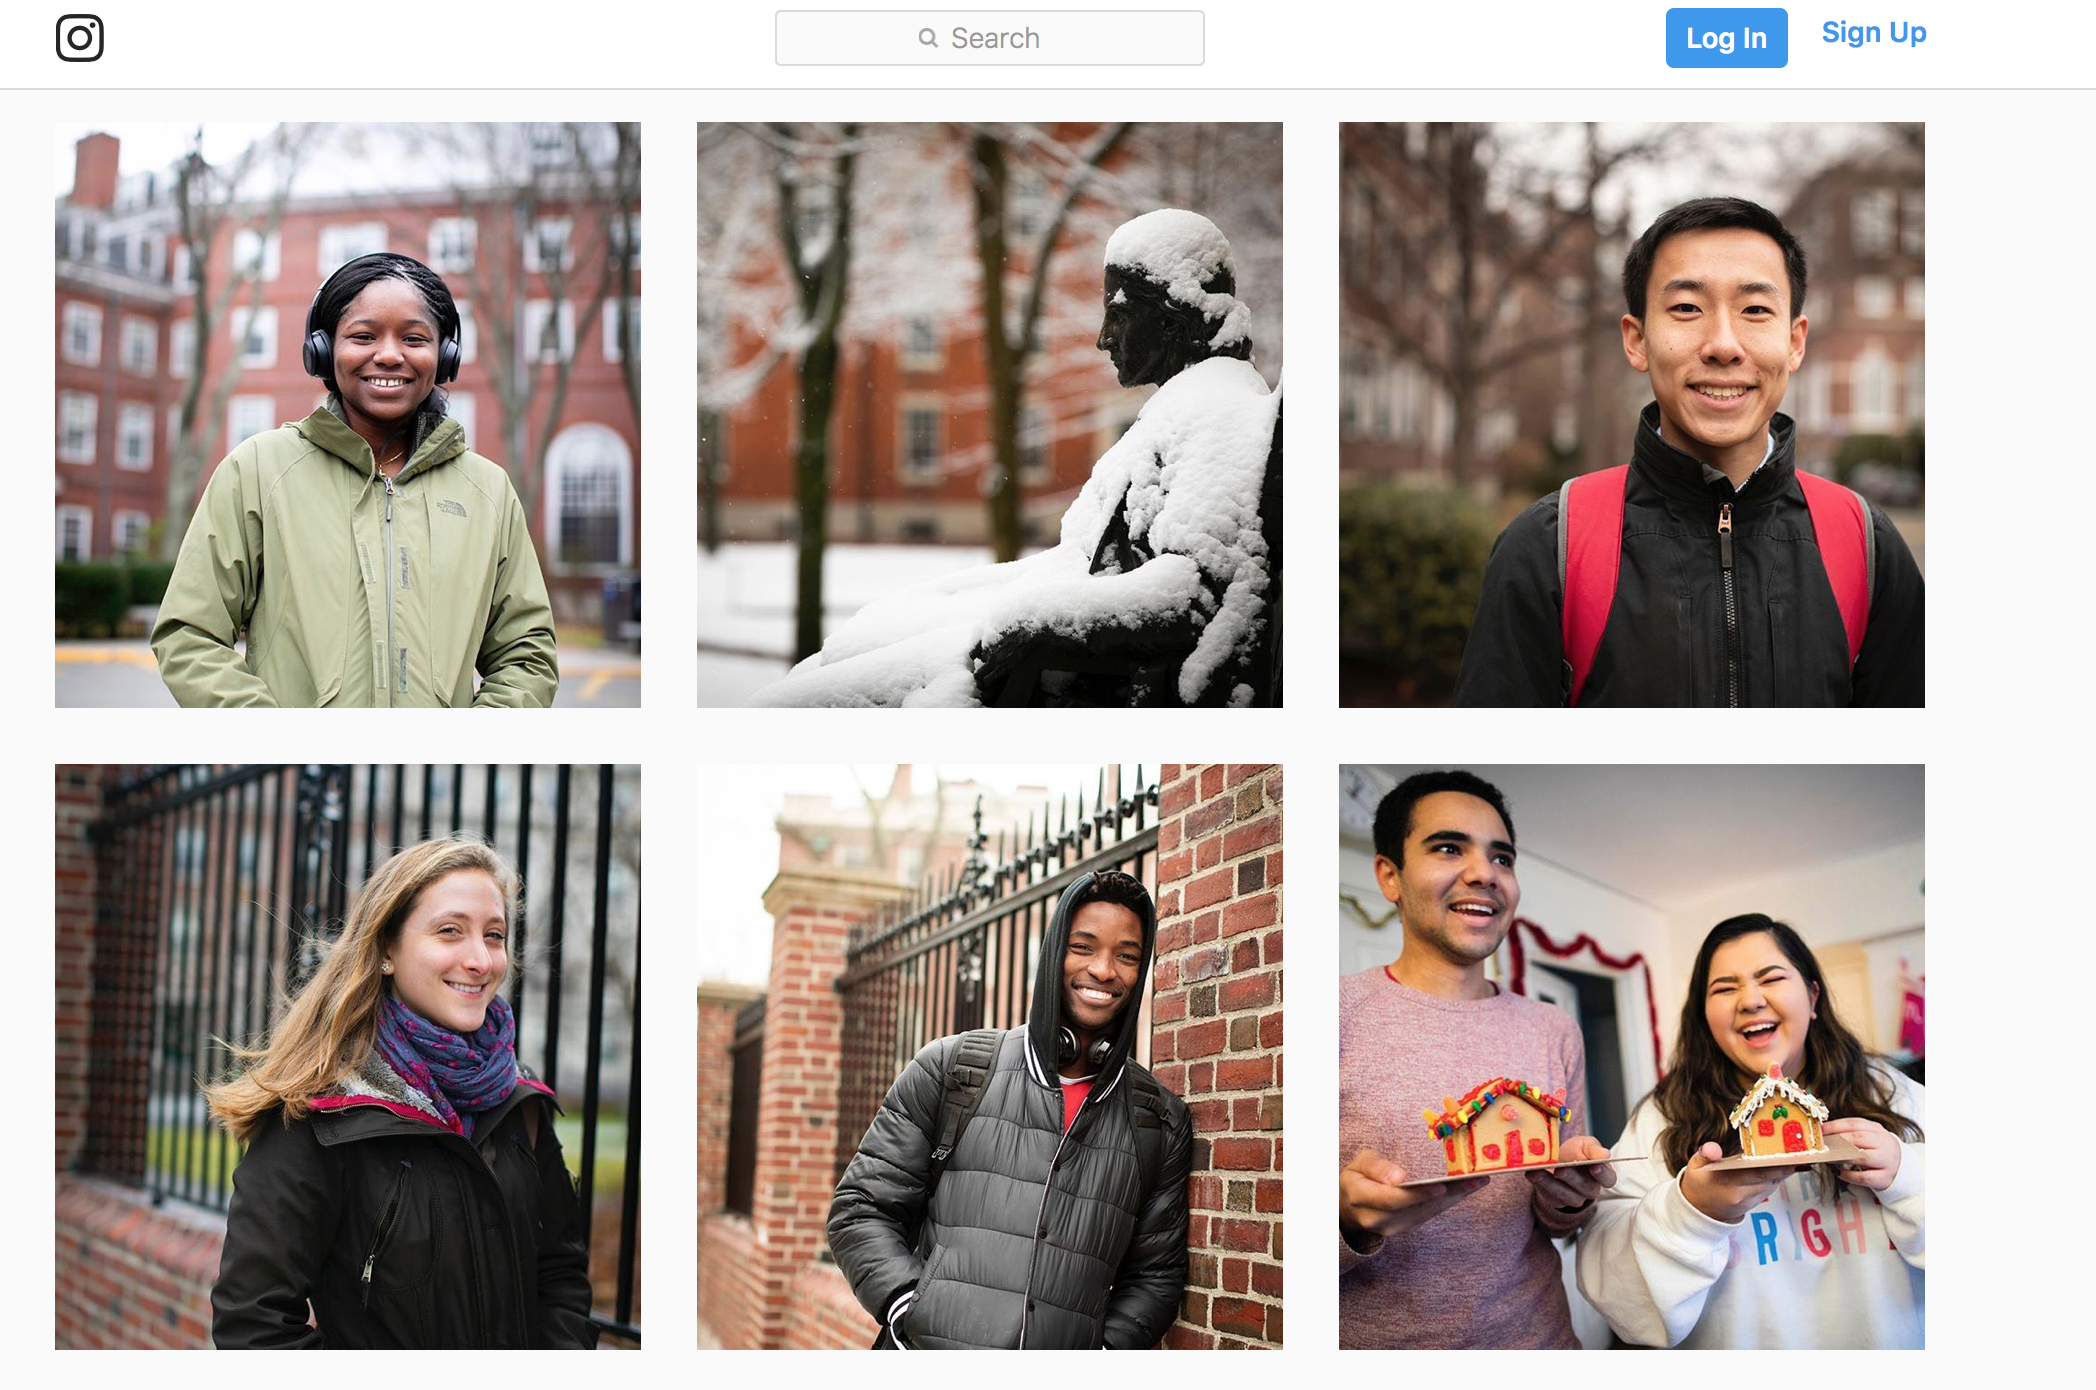 A screenshot from Harvard's Instagram profile, showing several posts of individual students smiling.